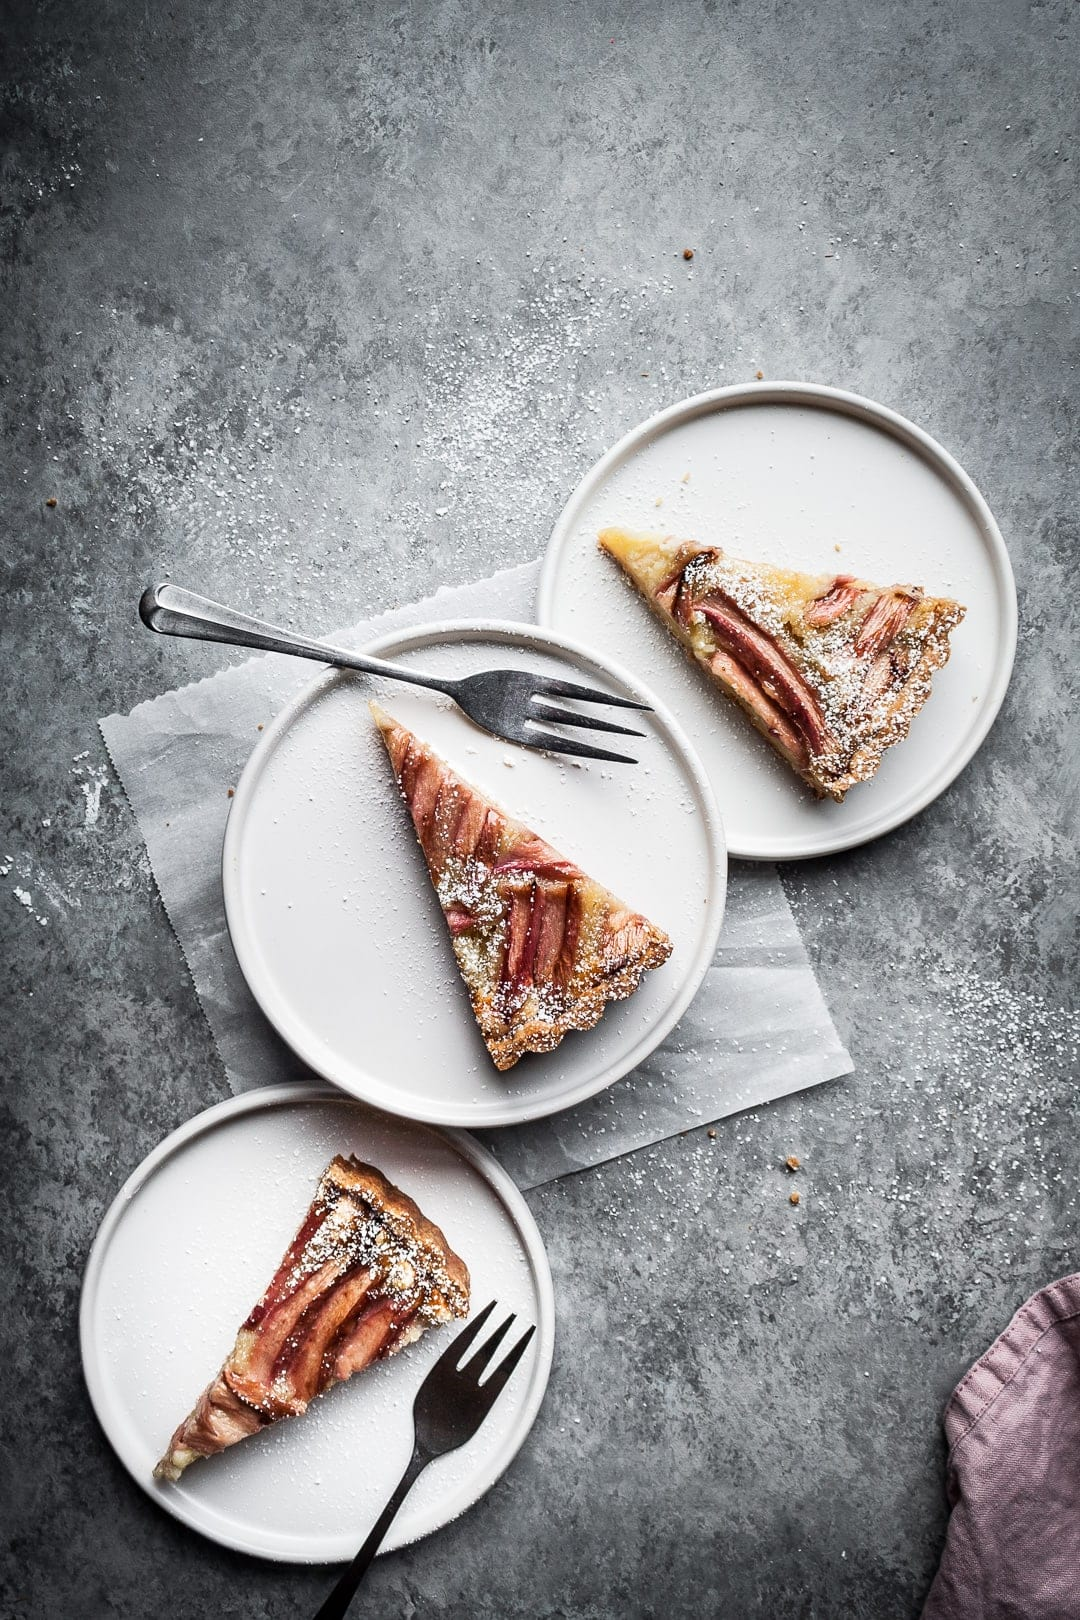 Three white plates with rhubarb tart slices and silver forks on a grey background